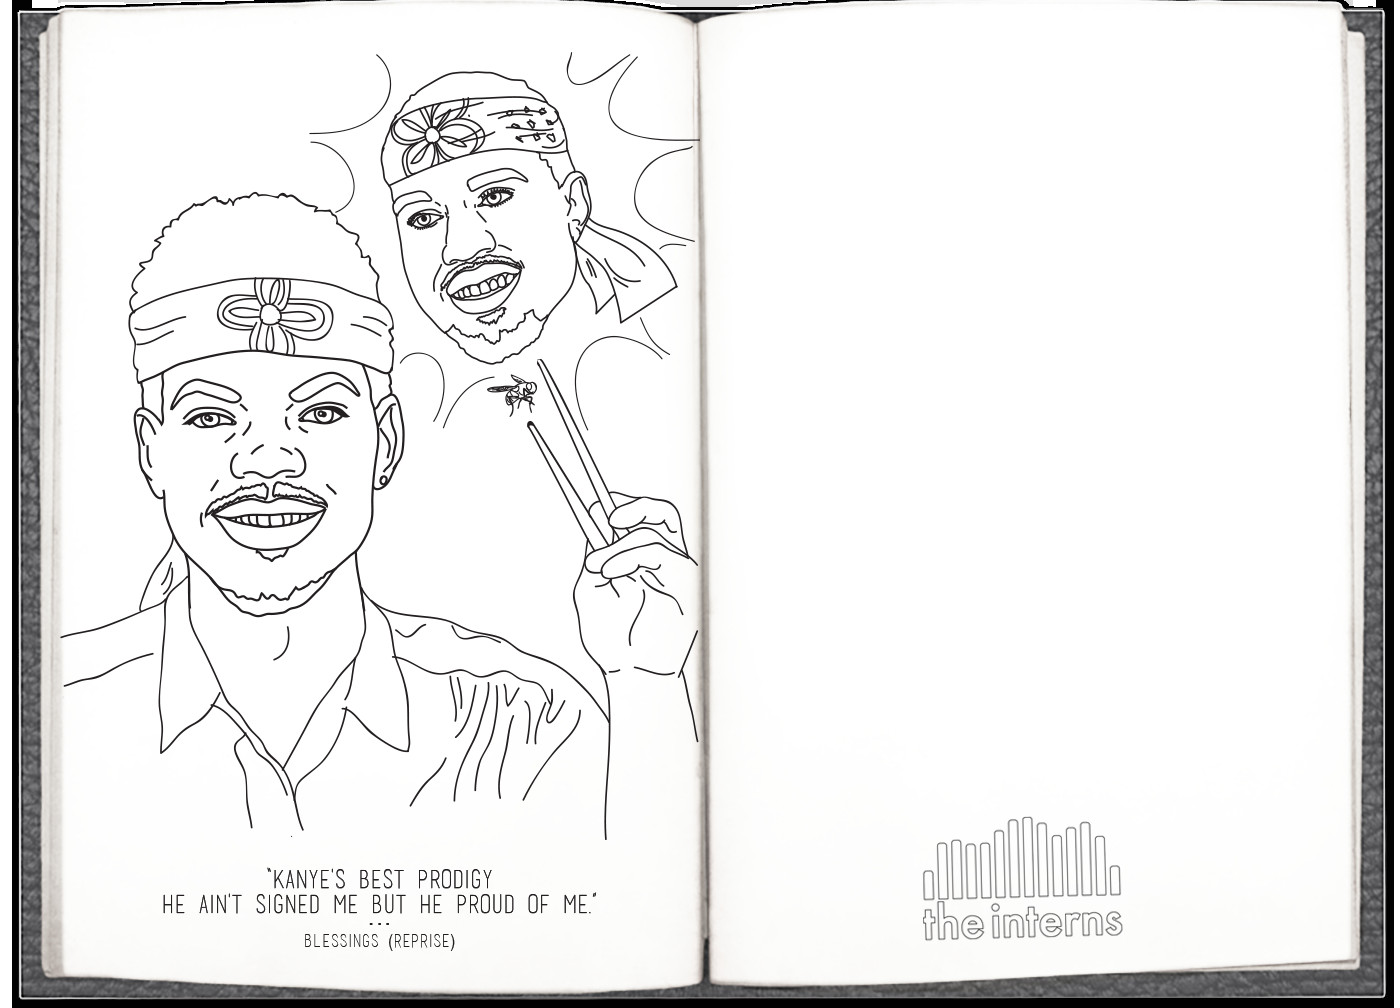 Chance The Rapper Coloring Book Lyrics  Chance The Rapper s Coloring Book Lyrics Are Now a